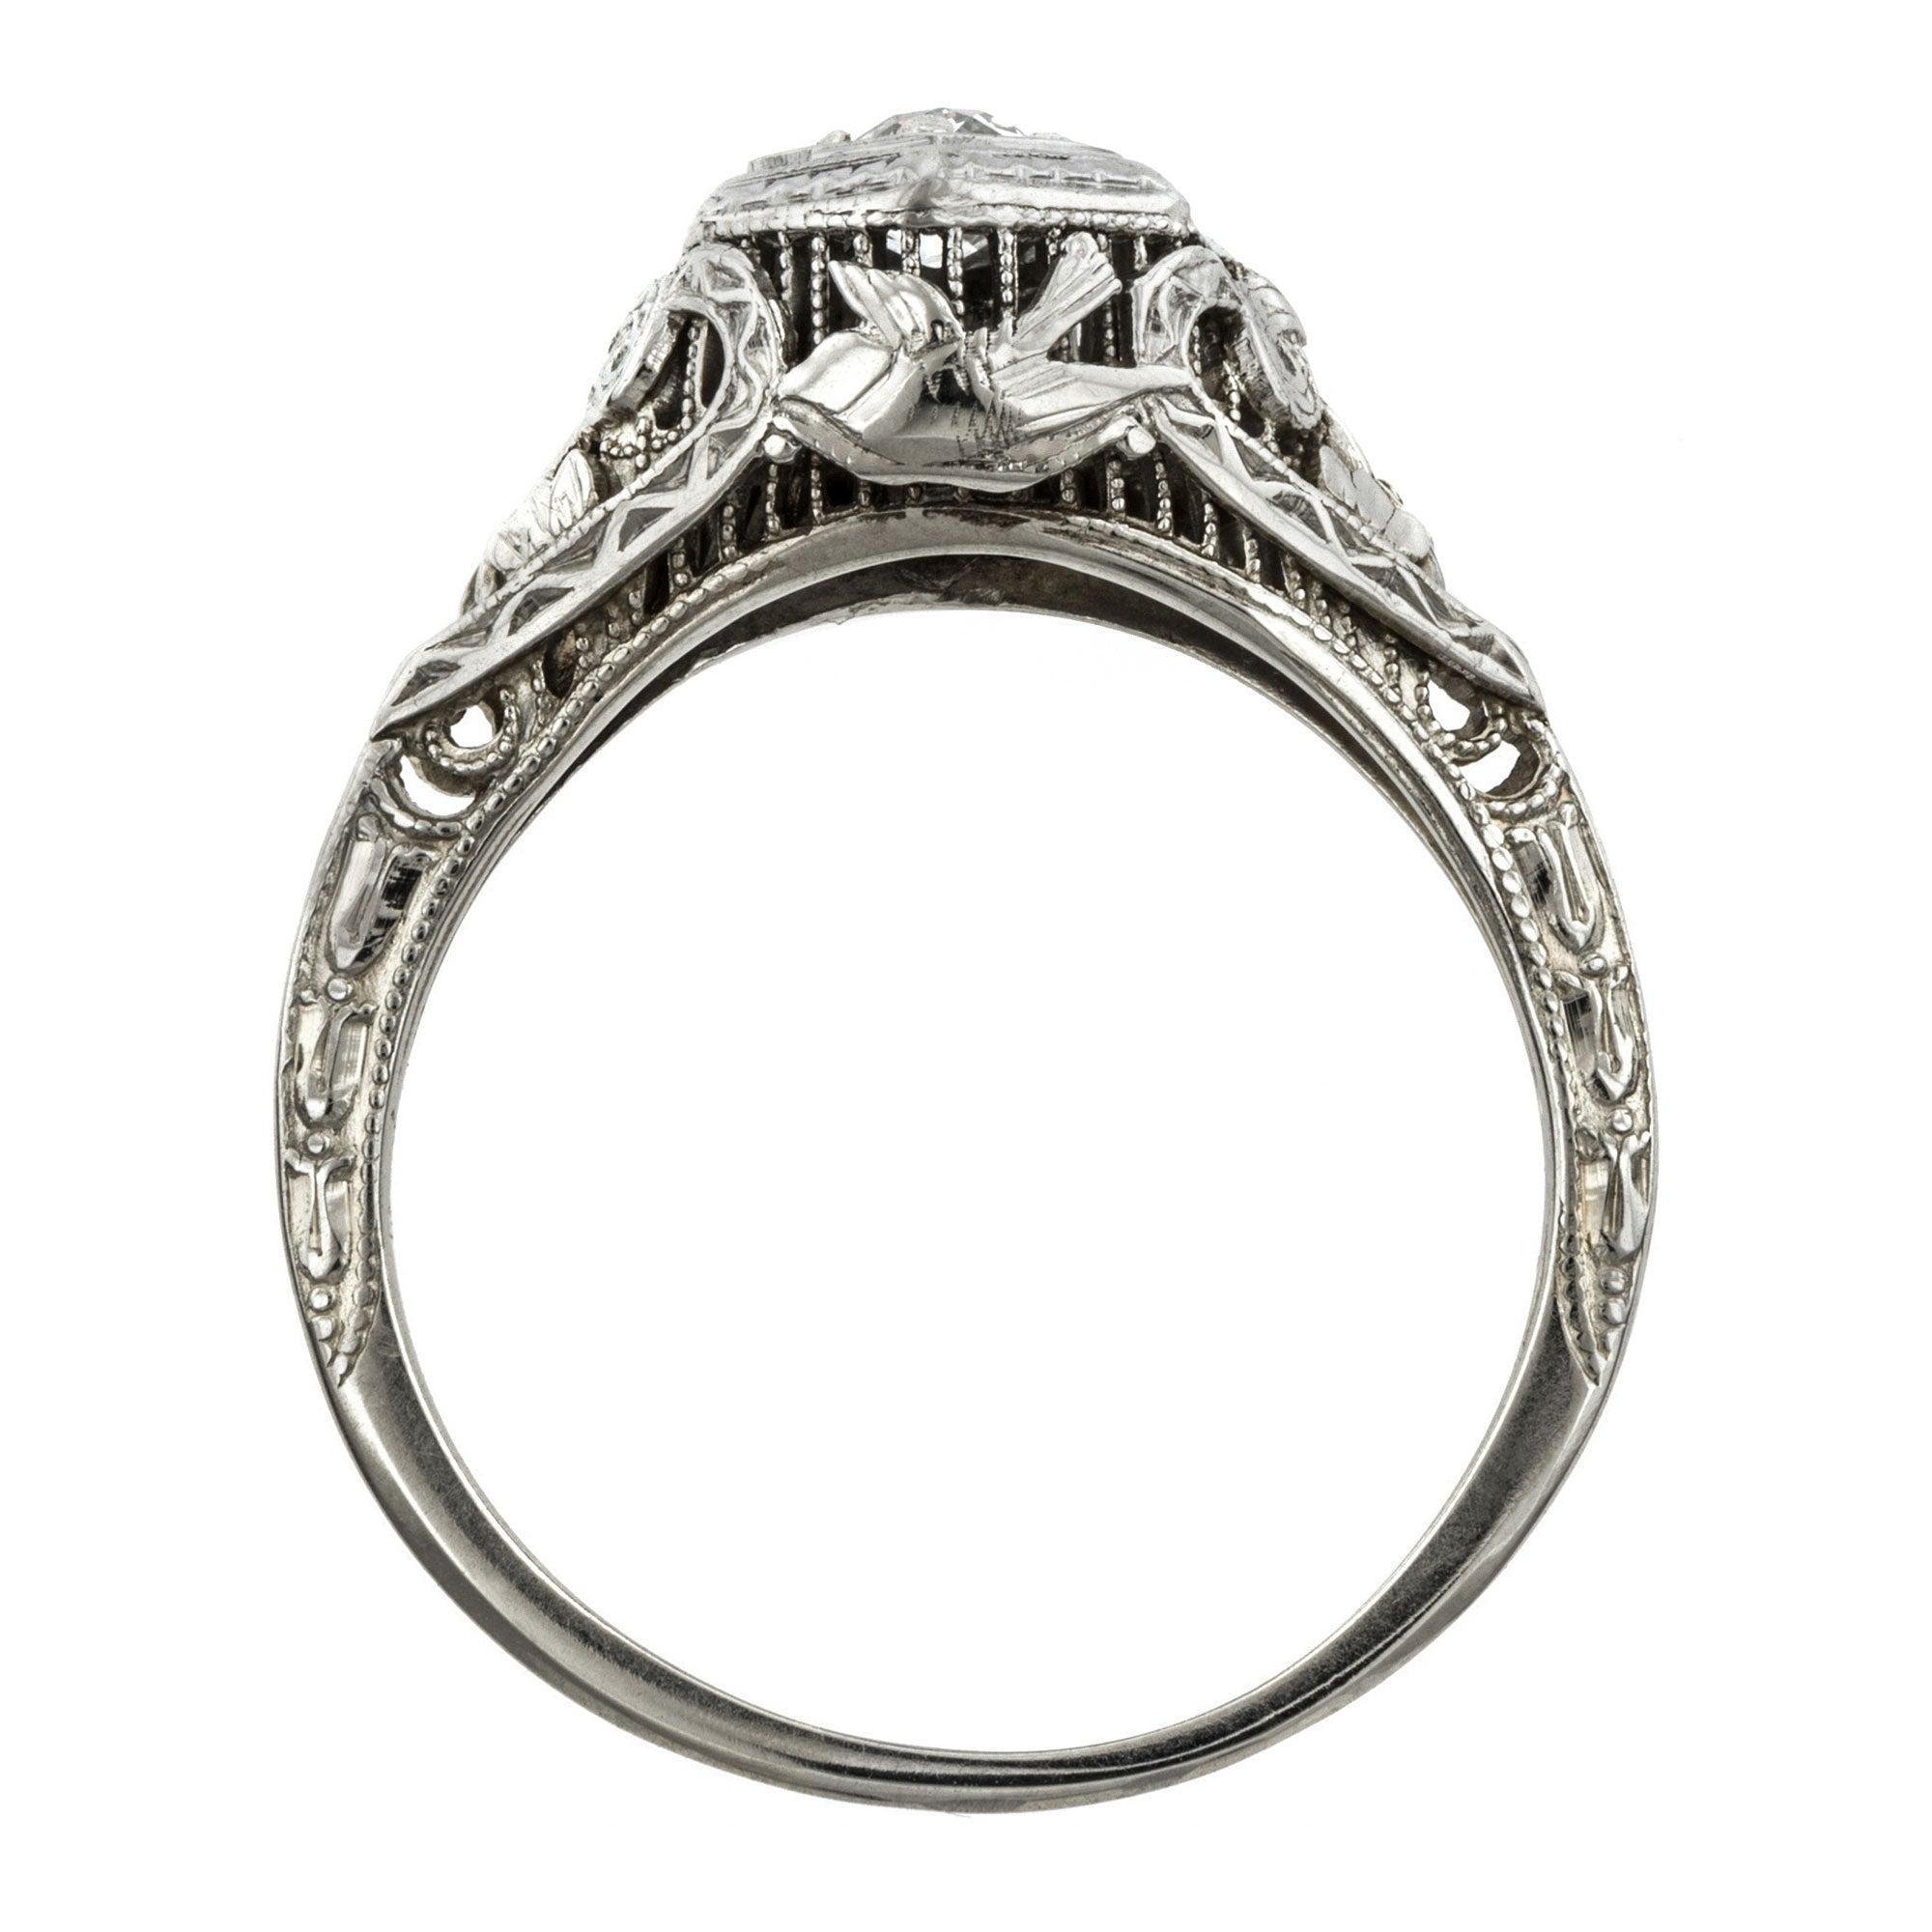 vault expand diamond rings art item to click ring ladies platinum the fine deco full engagement jewellery